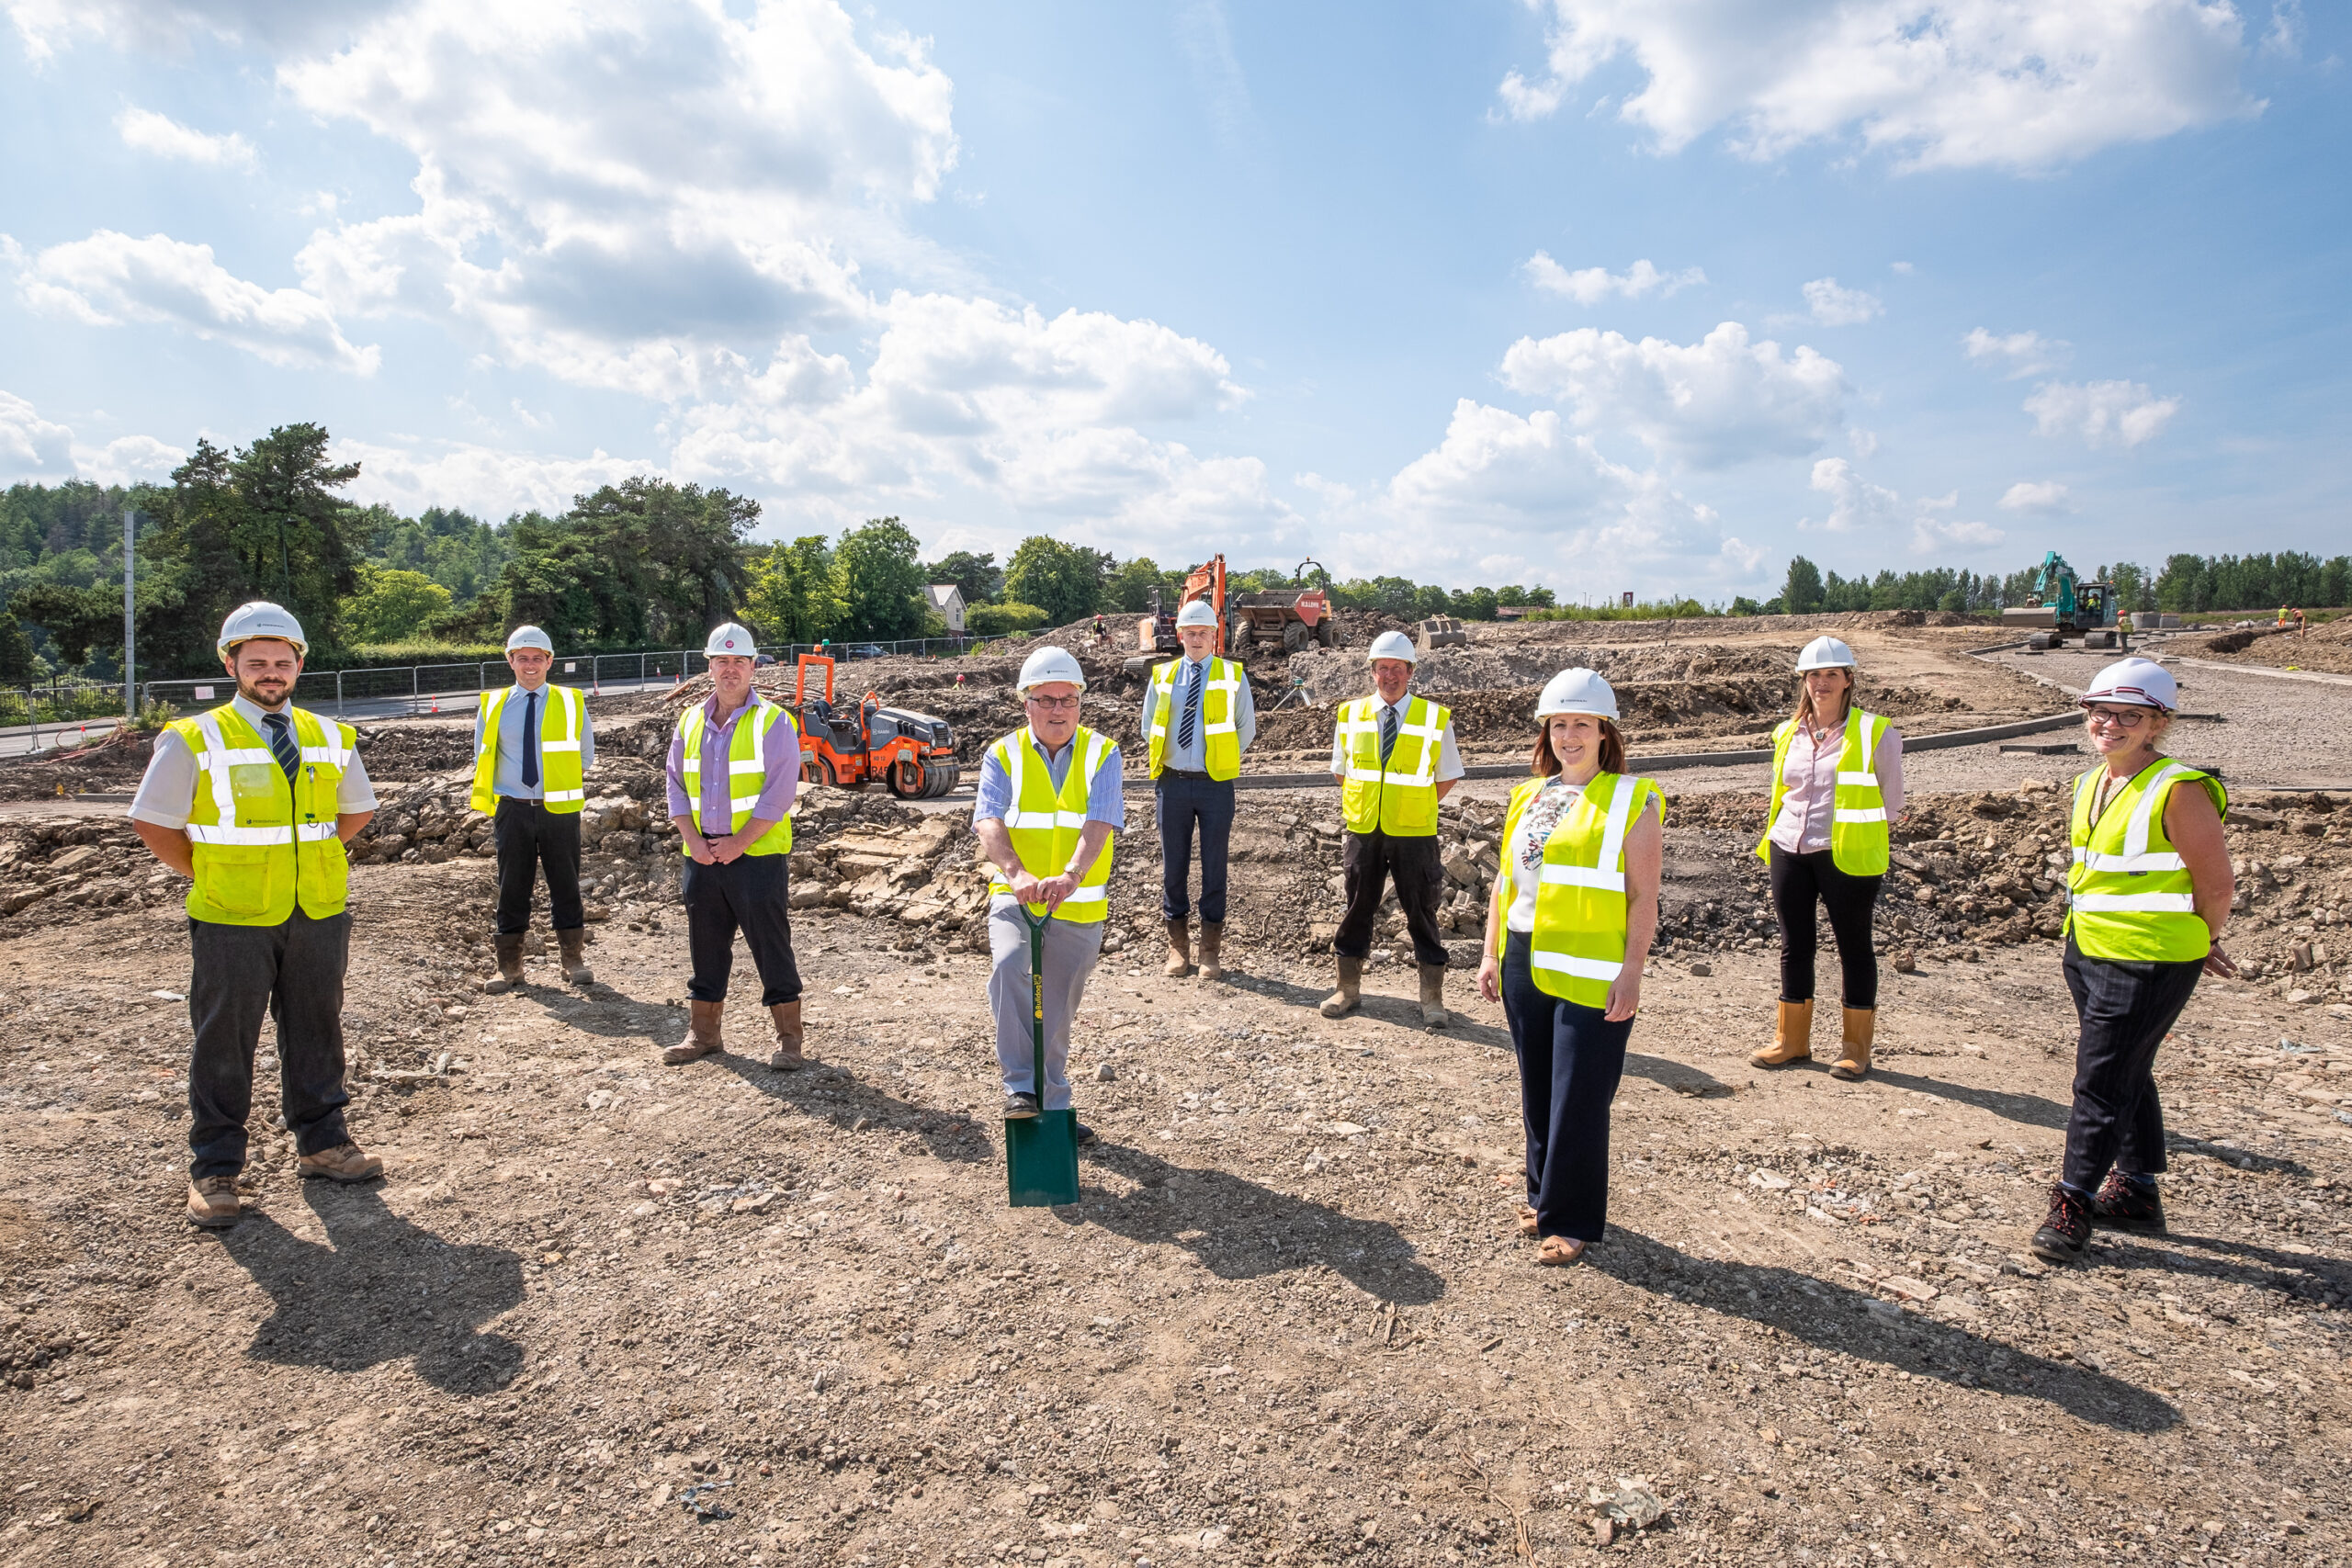 Carn Y Cefn development colleagues on site